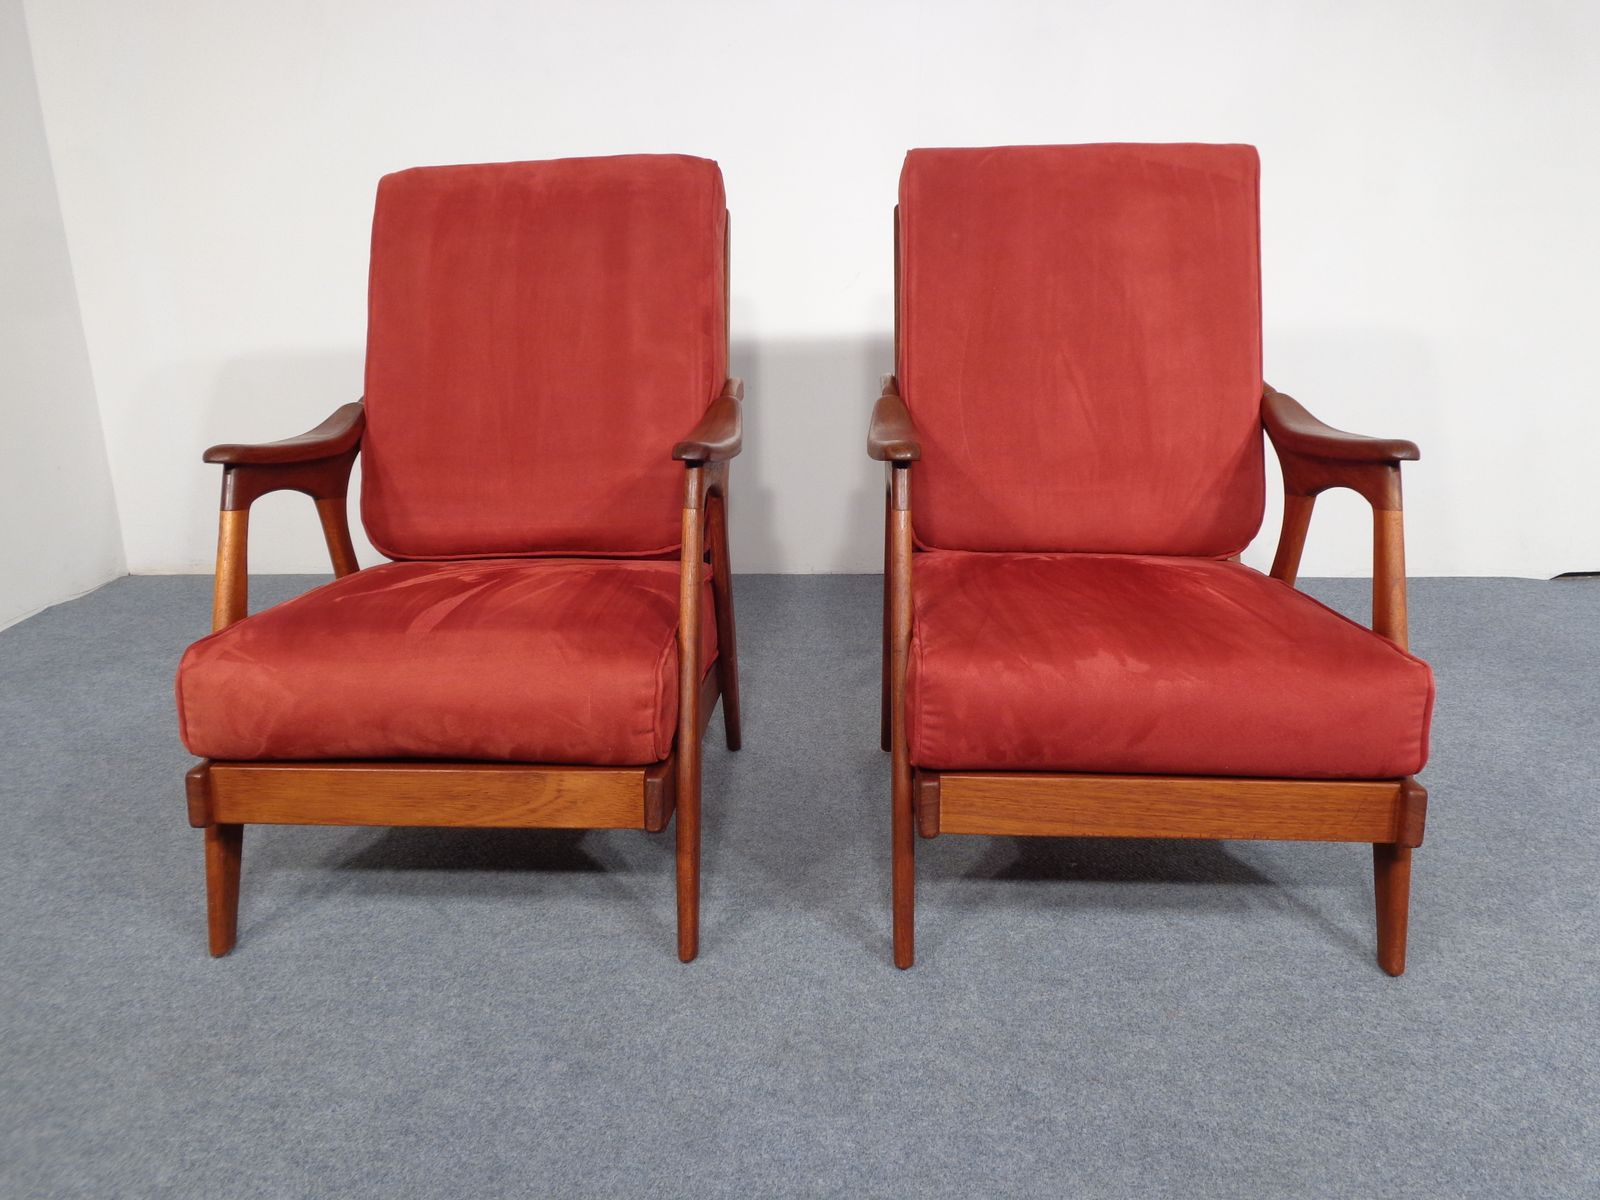 teak chaise lounge chairs sale barber shop for used 1950s set of 2 at pamono